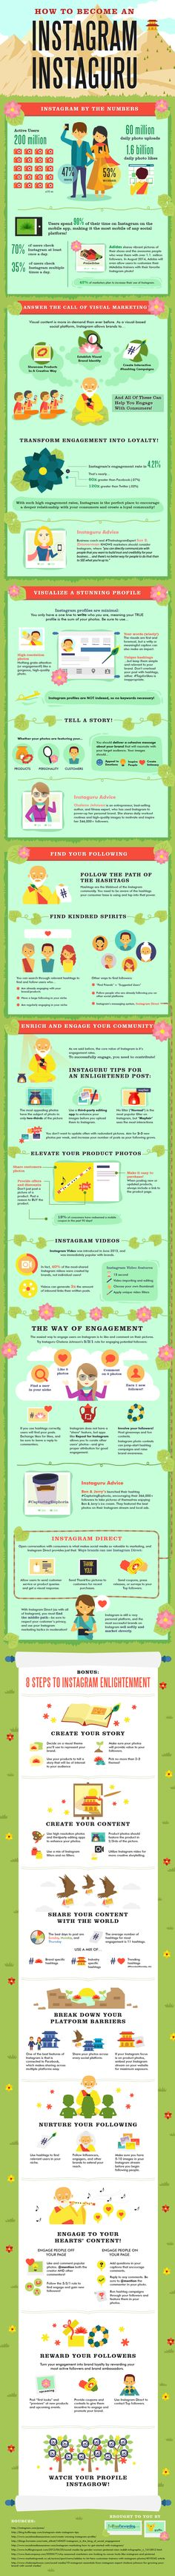 How To Become An Instagram Instaguru #infographic